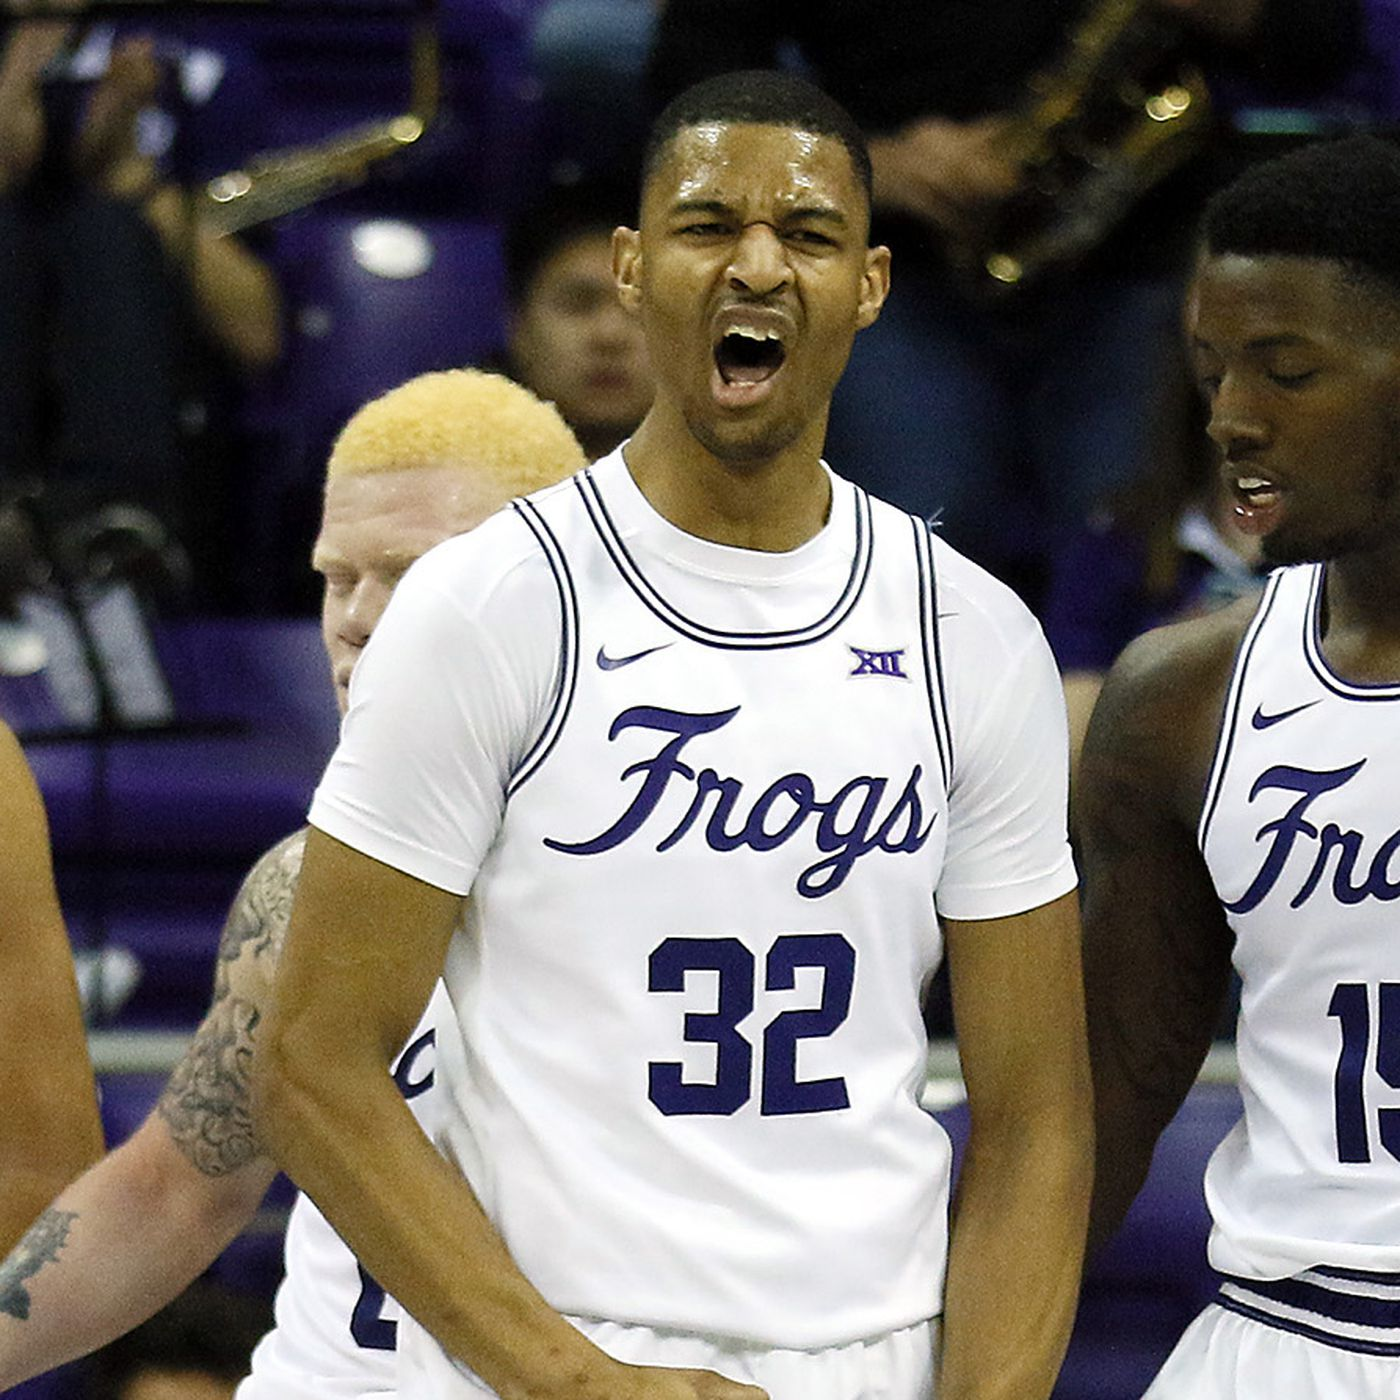 c589afdf776 Not Done Yet: TCU Basketball Heading to the NIT - Frogs O' War